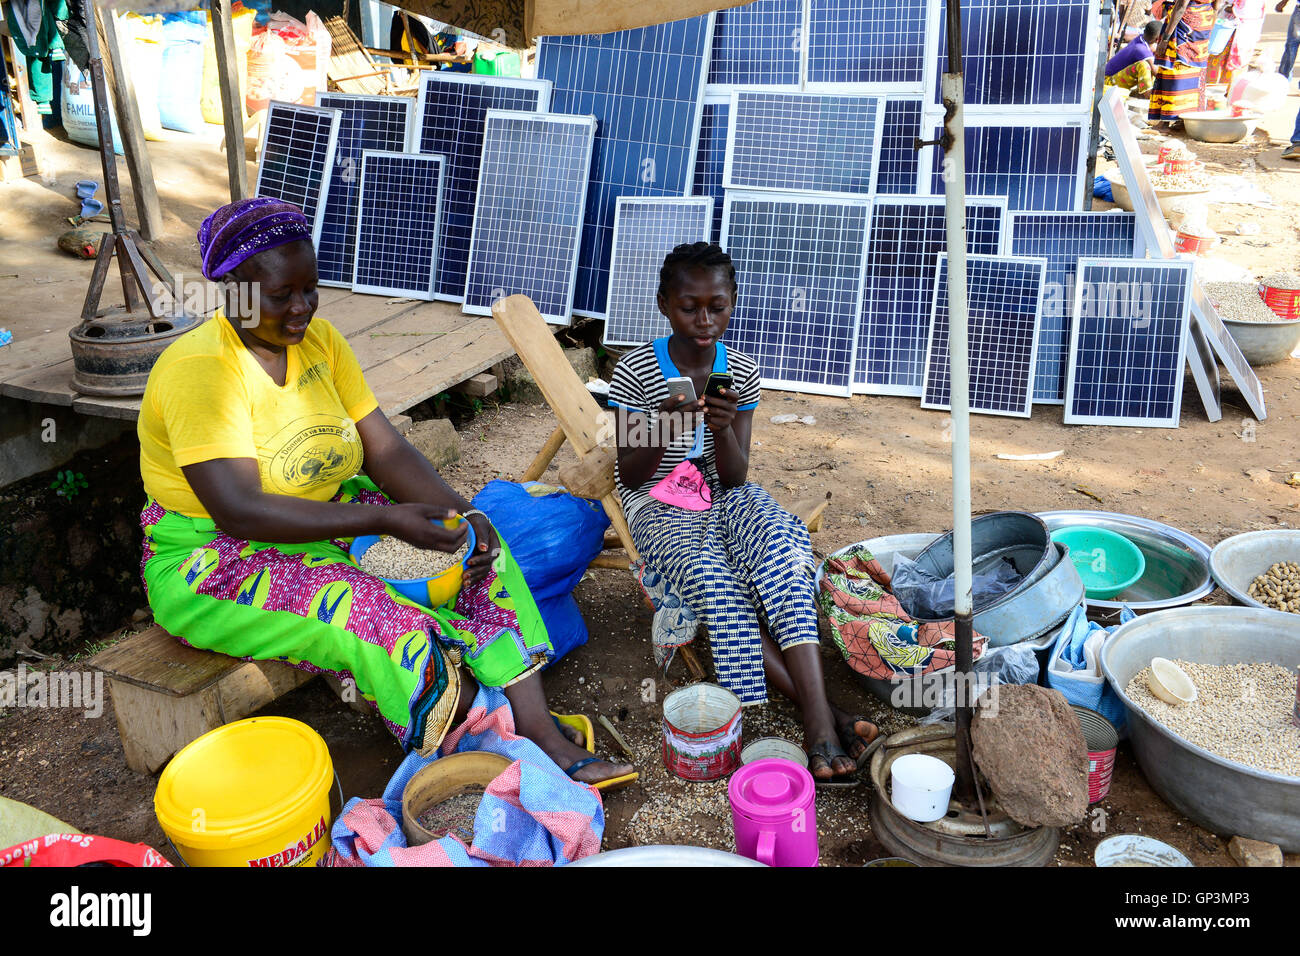 BURKINA FASO, Provinz Poni, Gaoua, weekly market with food crops and solar panels, girl playing with mobile phone Stock Photo